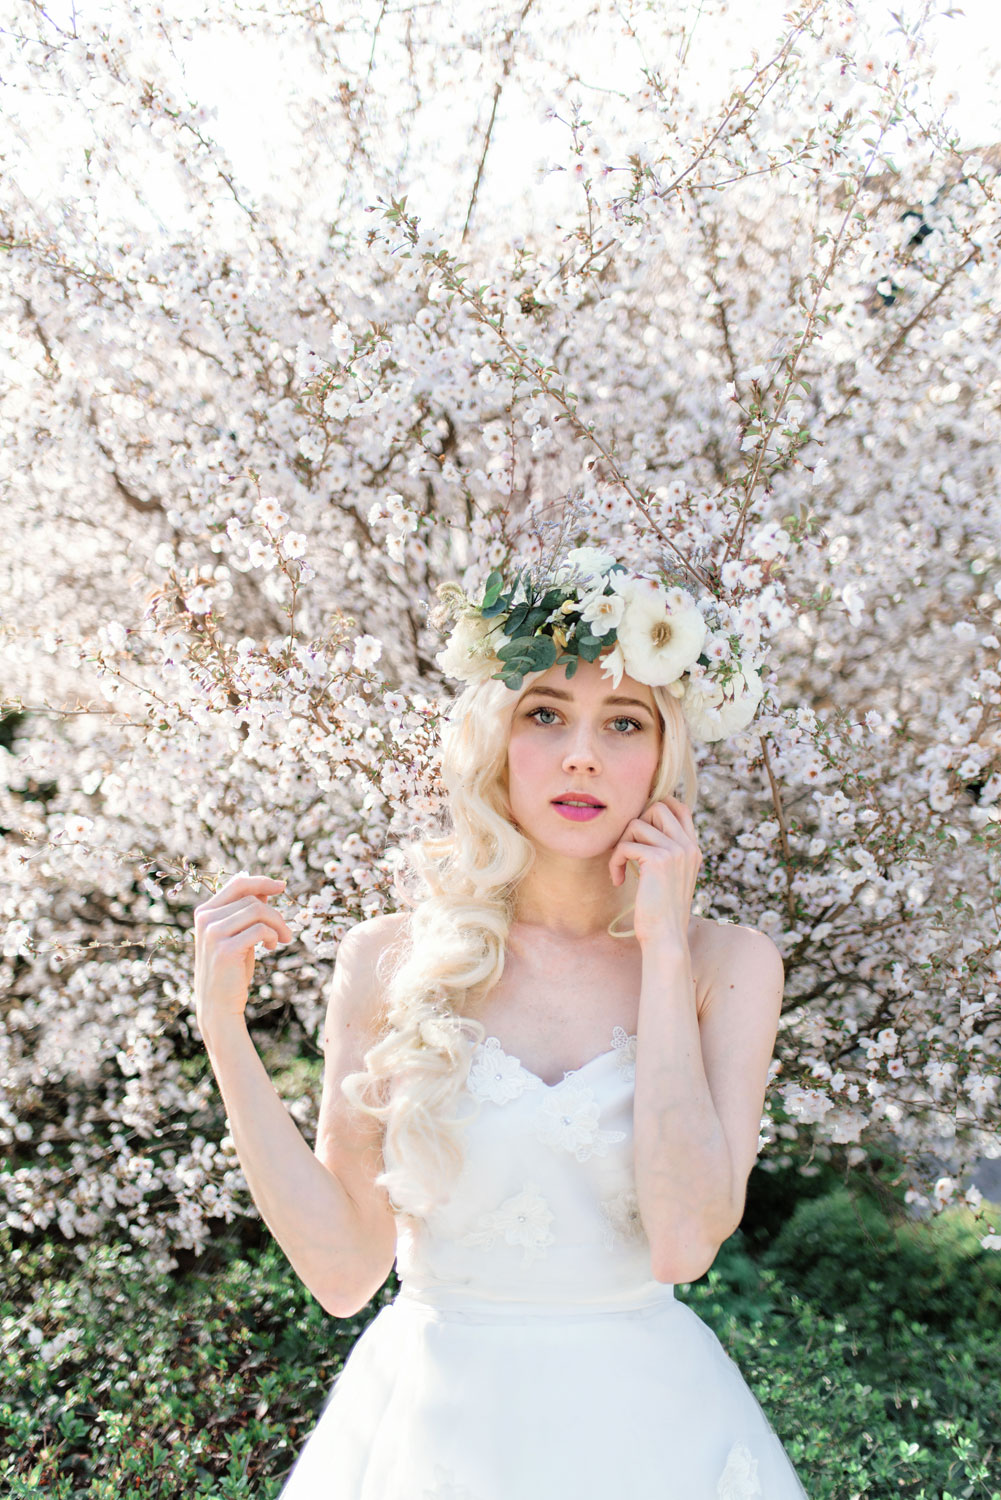 Get Inspired By The Most Beautiful Floral Crowns